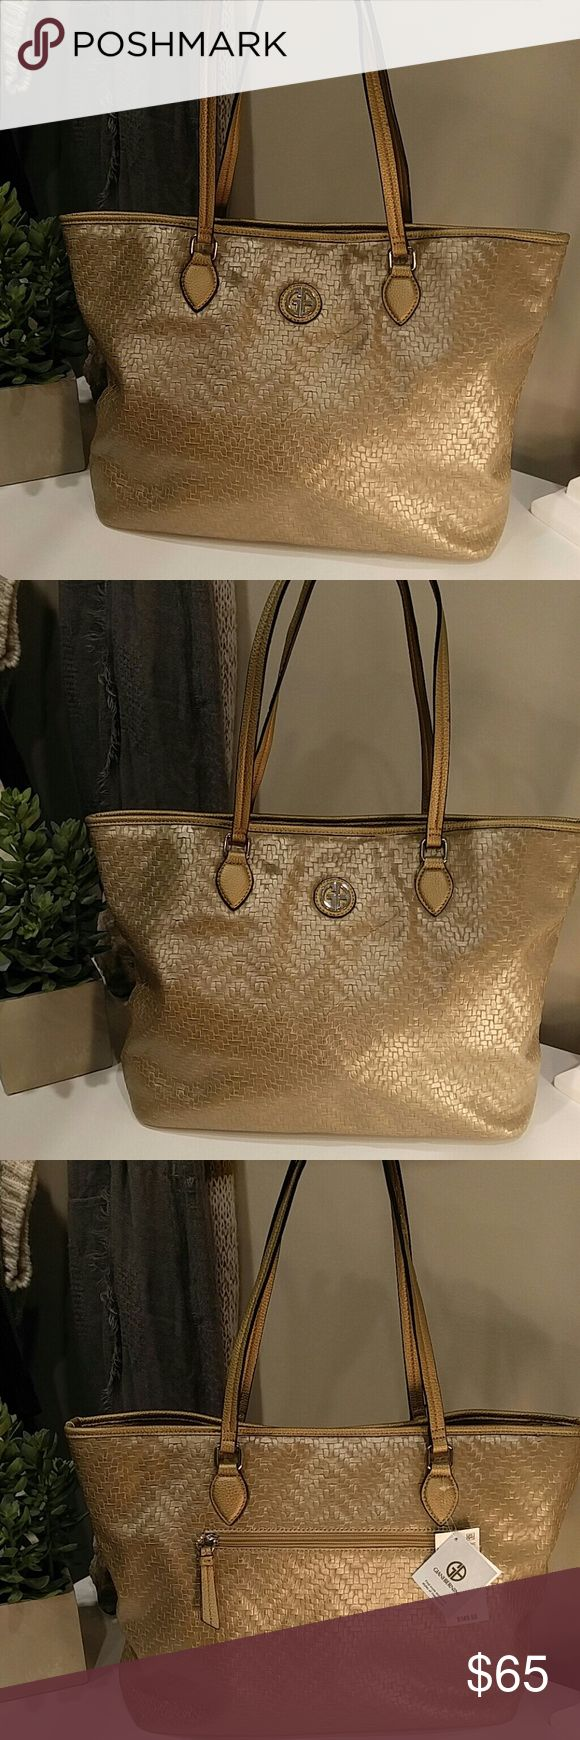 "NWT GIANI BERNINI BRONZE LEATHER WEAVED BAG $149.50 100% Authentic GIANI BERNINI LEATHER BRONZE Tote Bag Silver Tote Bag  Measurements: 14.5"" L x  11.75"" H x 4.75"" W  Dual straps with 10"" drop   Exterior:  Made of saffiano bronze leather  Front Giani Bernini Plaque  Rear zip pocket  2 Magnetic Snap Closures and 1 middle zip closure  Interior:  Khaki Satin lining & Silver Faux Leather Trimming  One  Zip Pocket  One Slip Pocket  Giani Bernini plaque on the inside Giani Bernini Bags Totes"